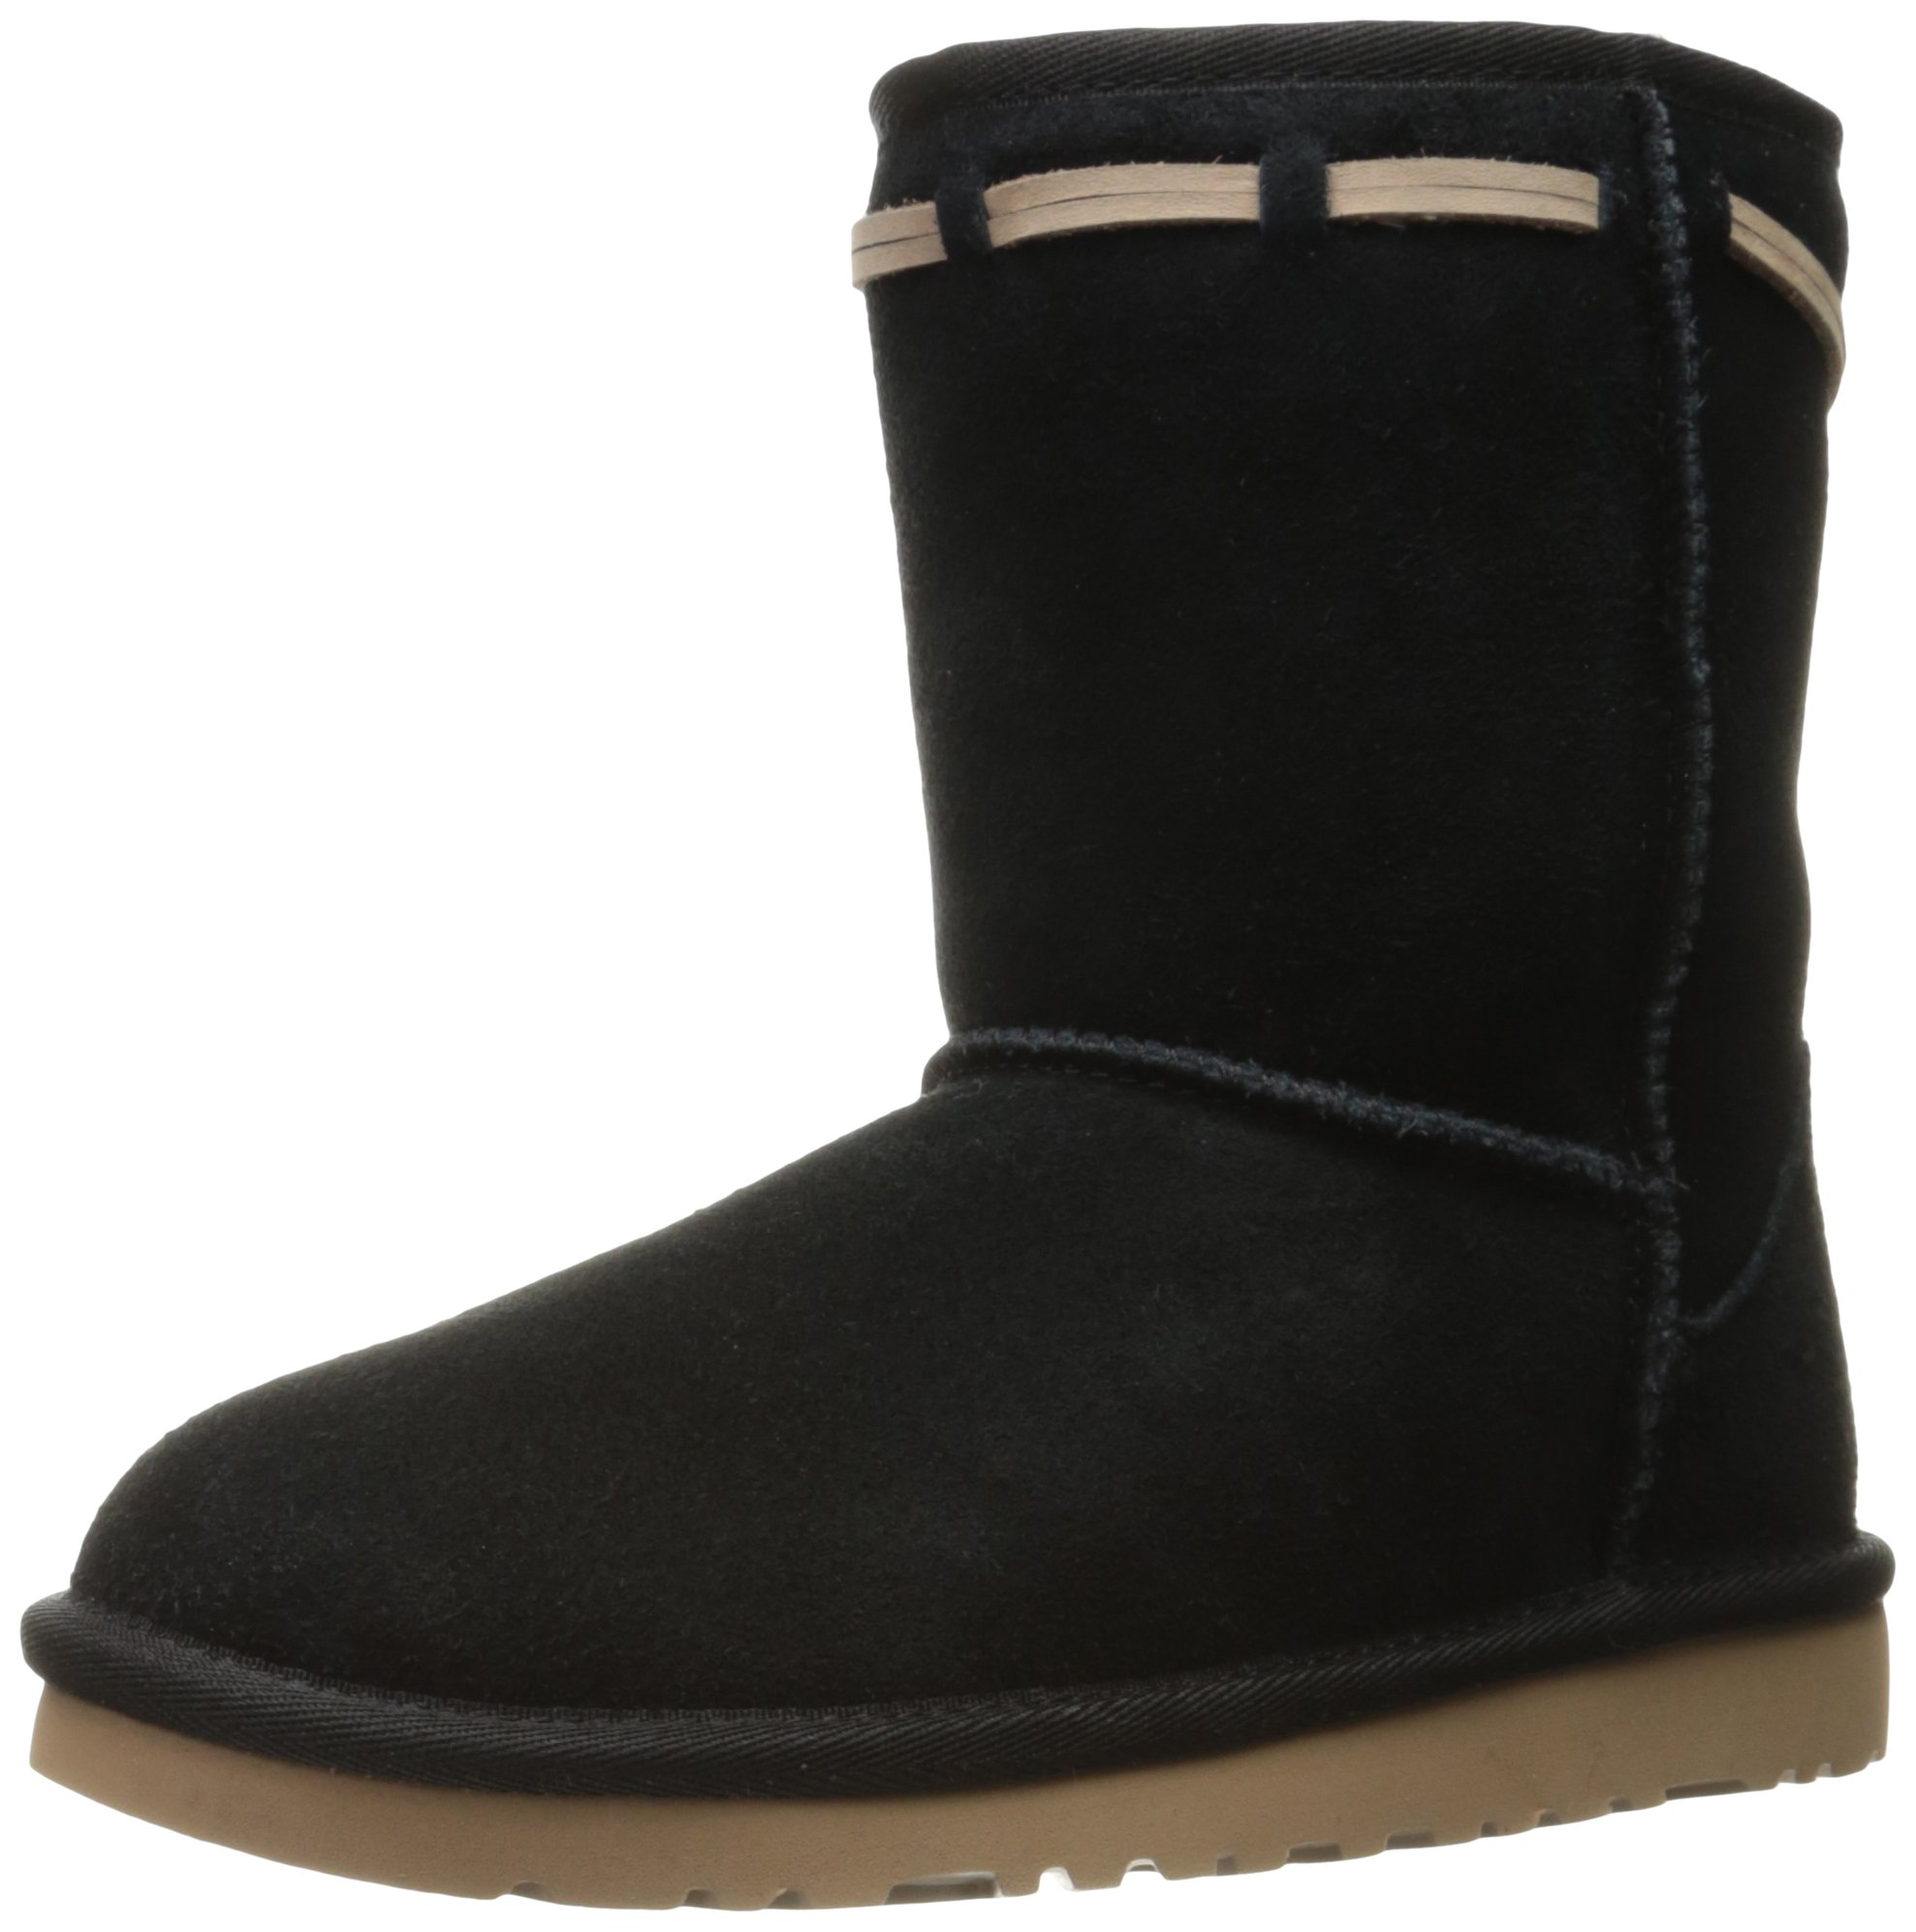 UGG Kids' K Classic Short Carranza Pull-on Boot, Black, 2 M US Little Kid by UGG (Image #1)